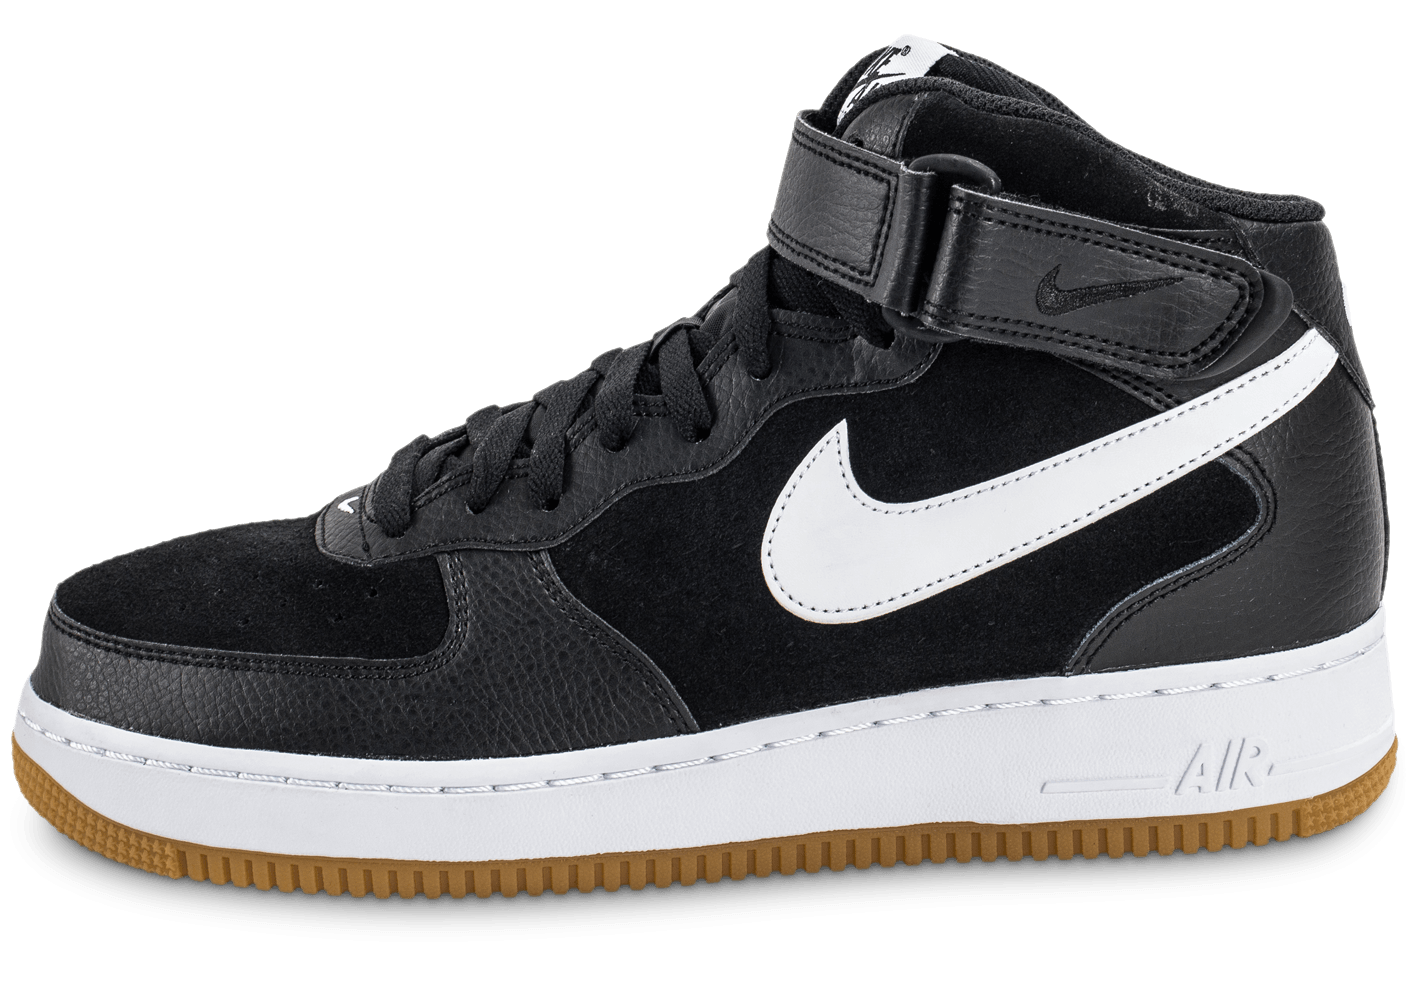 nike air force 1 airness mid pas cher